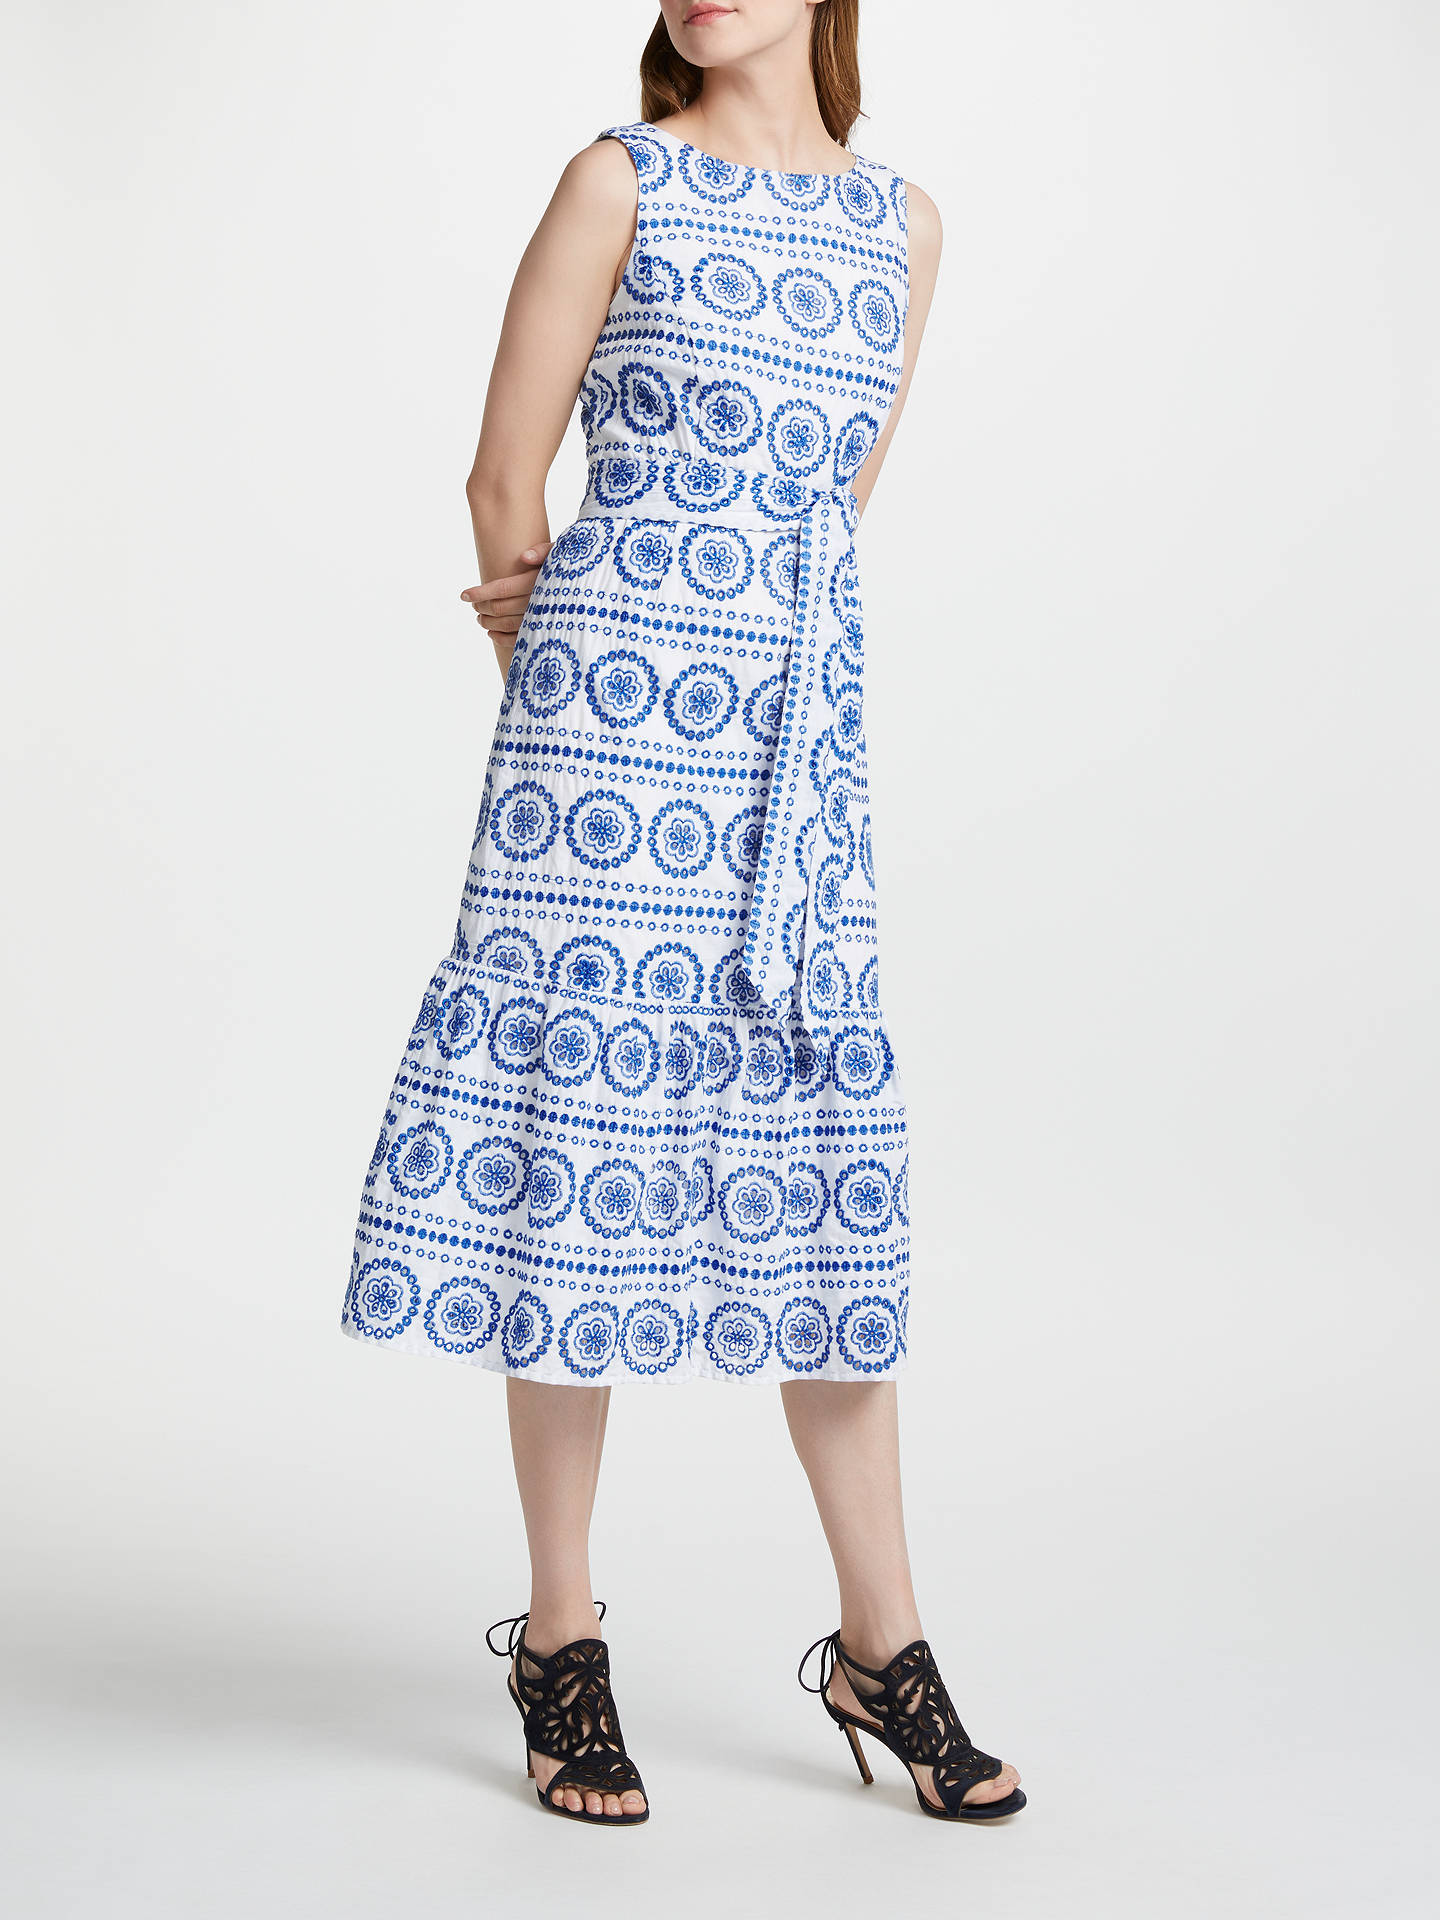 BuyBoden Broderie Dress, White China Blue Embroidery, 8 Online at johnlewis.com